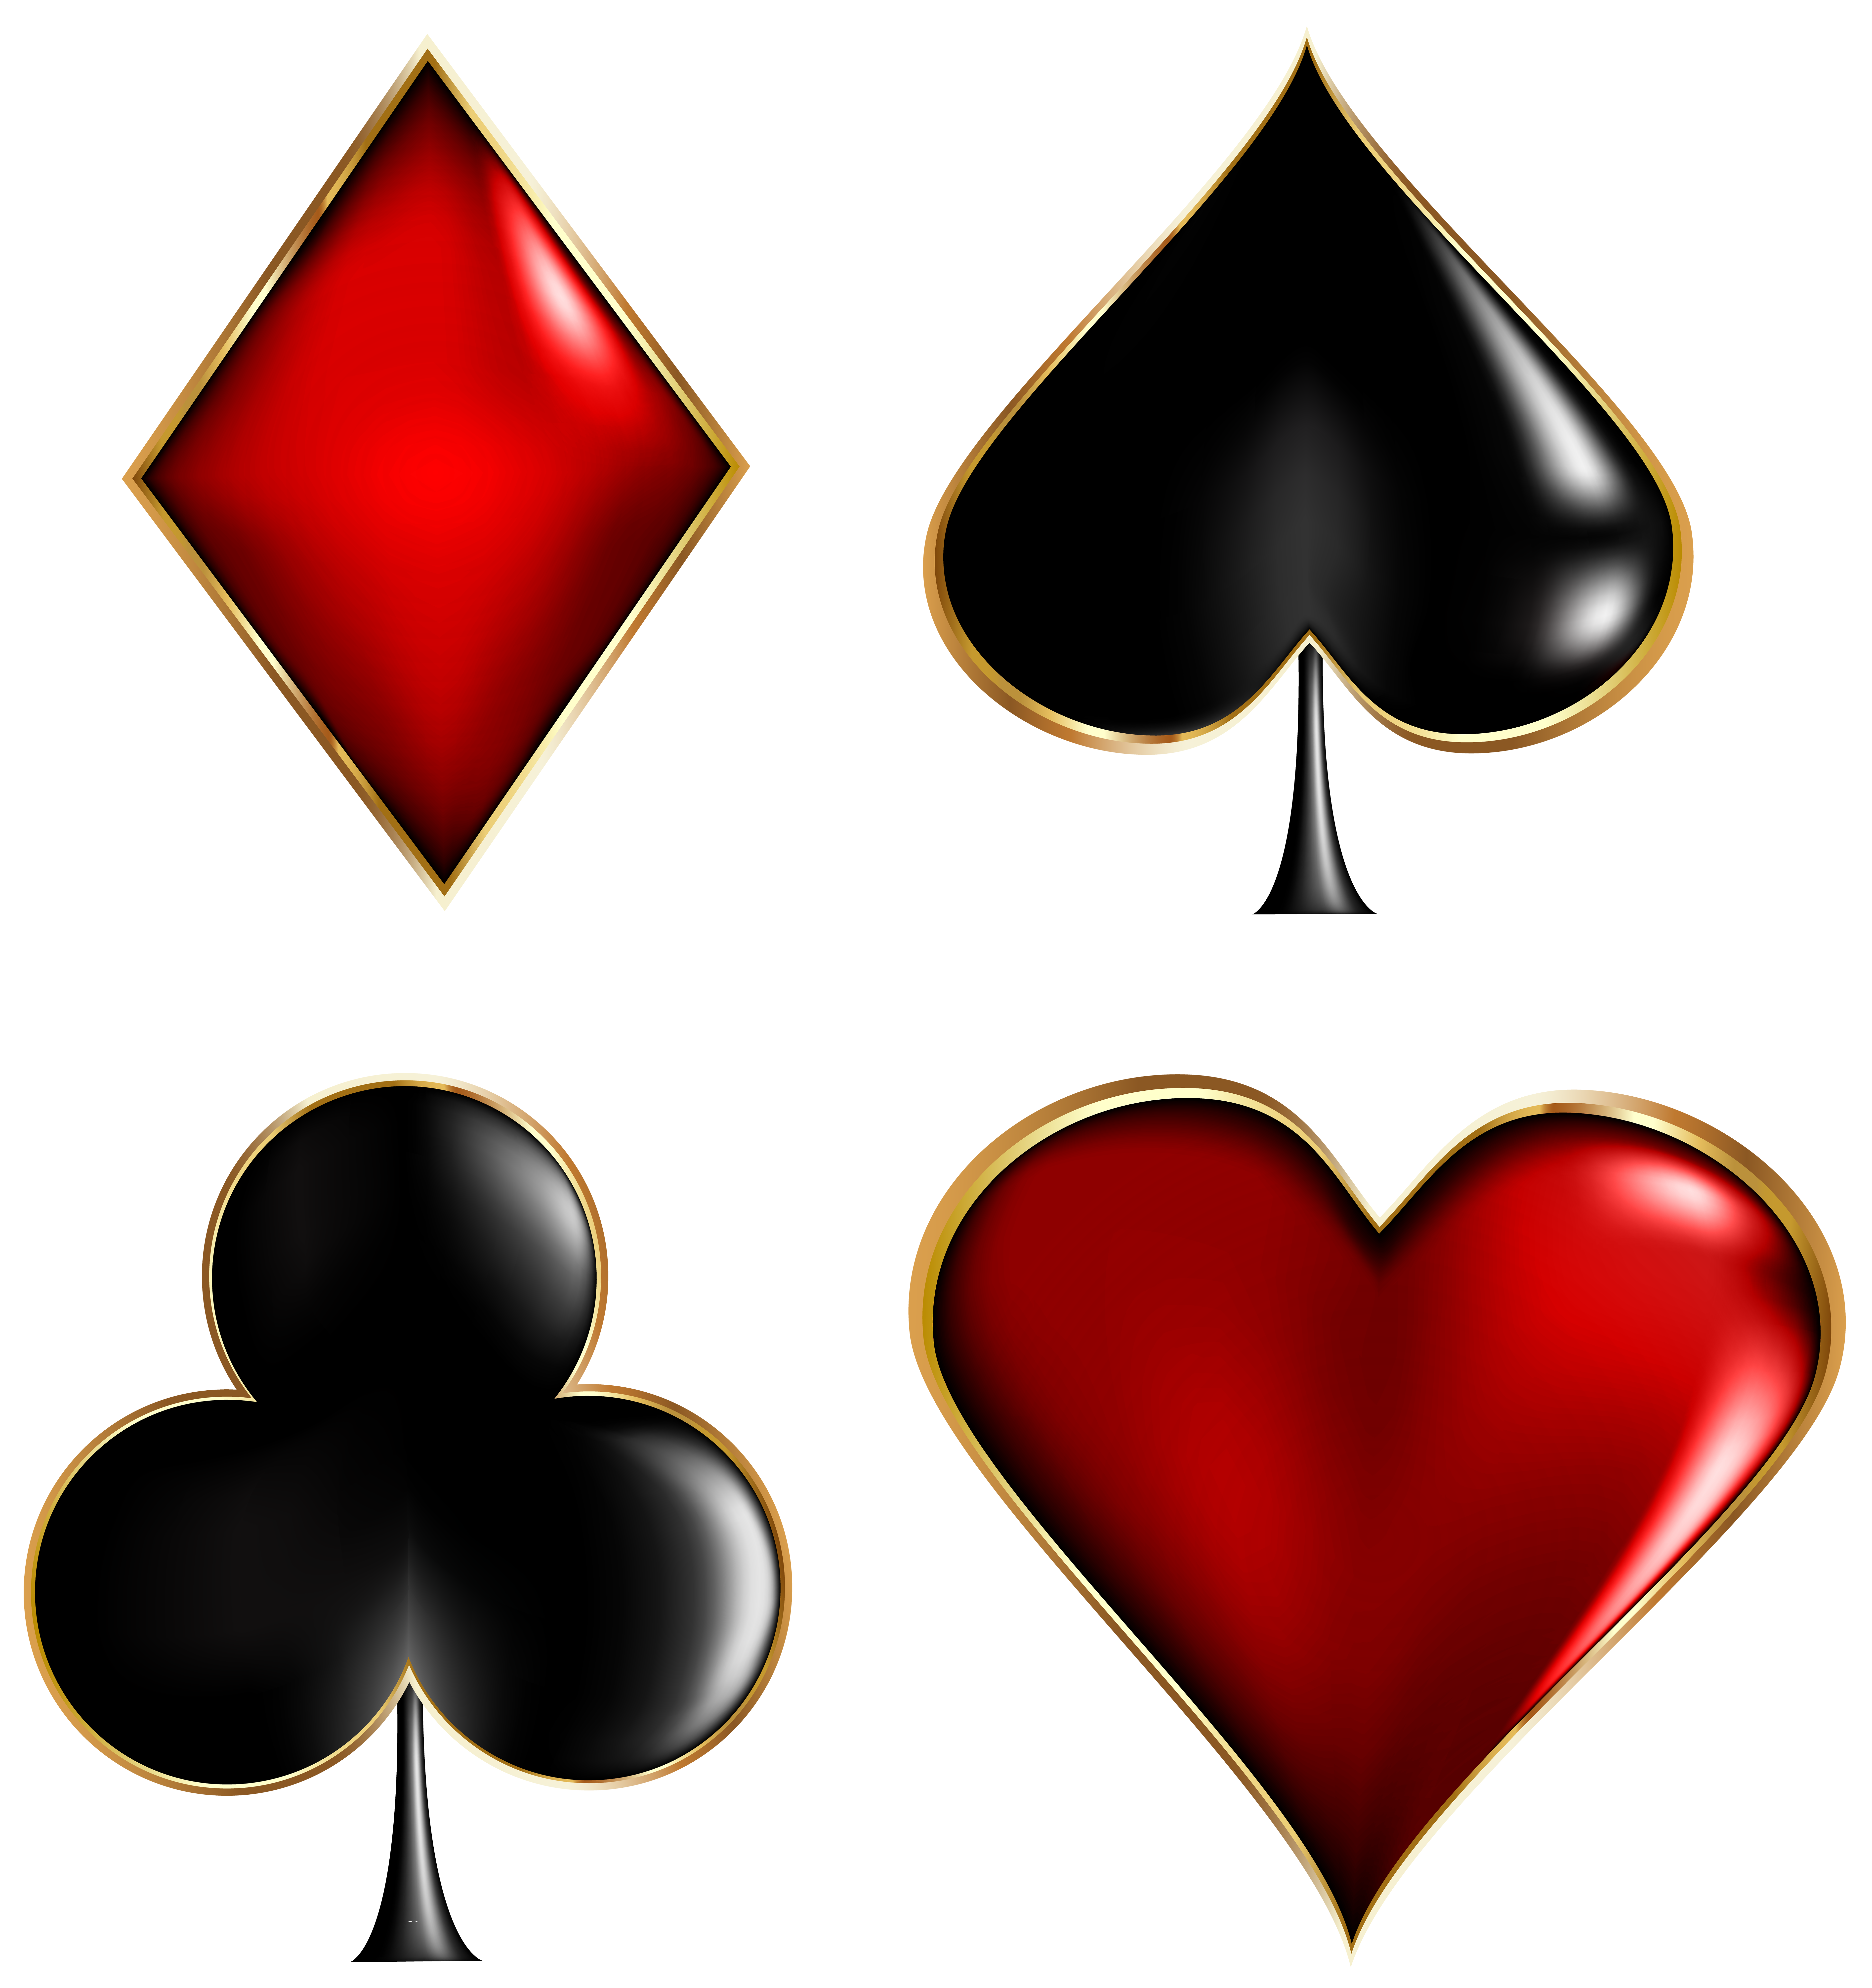 Card Suits Transparent Clip Art Image Gallery Yopriceville High Quality Images And Transparent Png Free Clipart Card Tattoo Clip Art Art Images